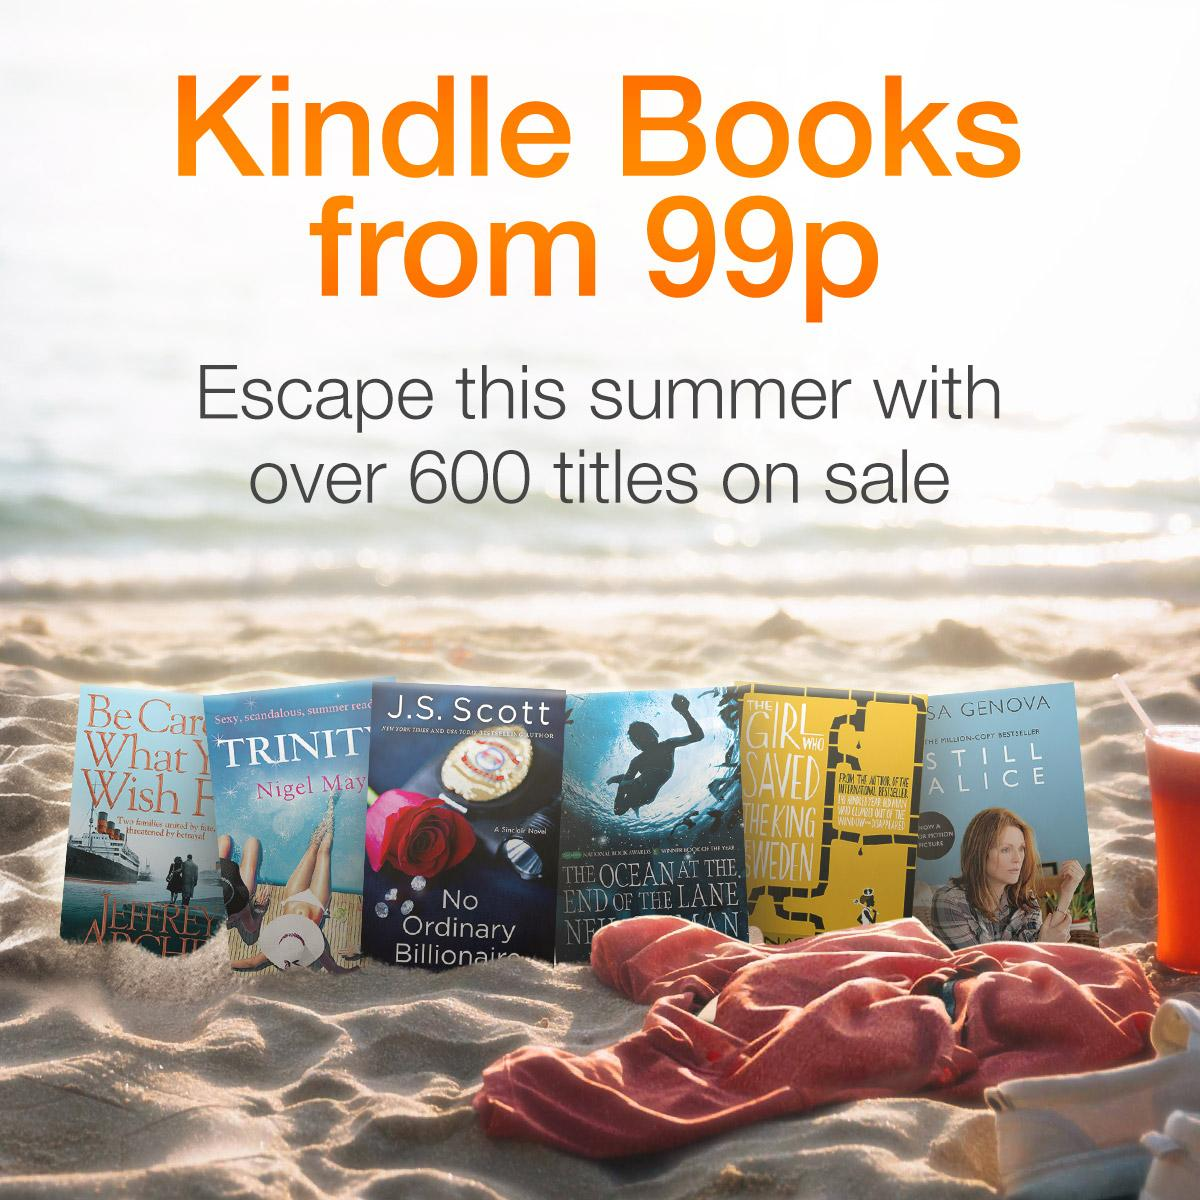 Amazon Uk Books Amazon Co Uk On Twitter